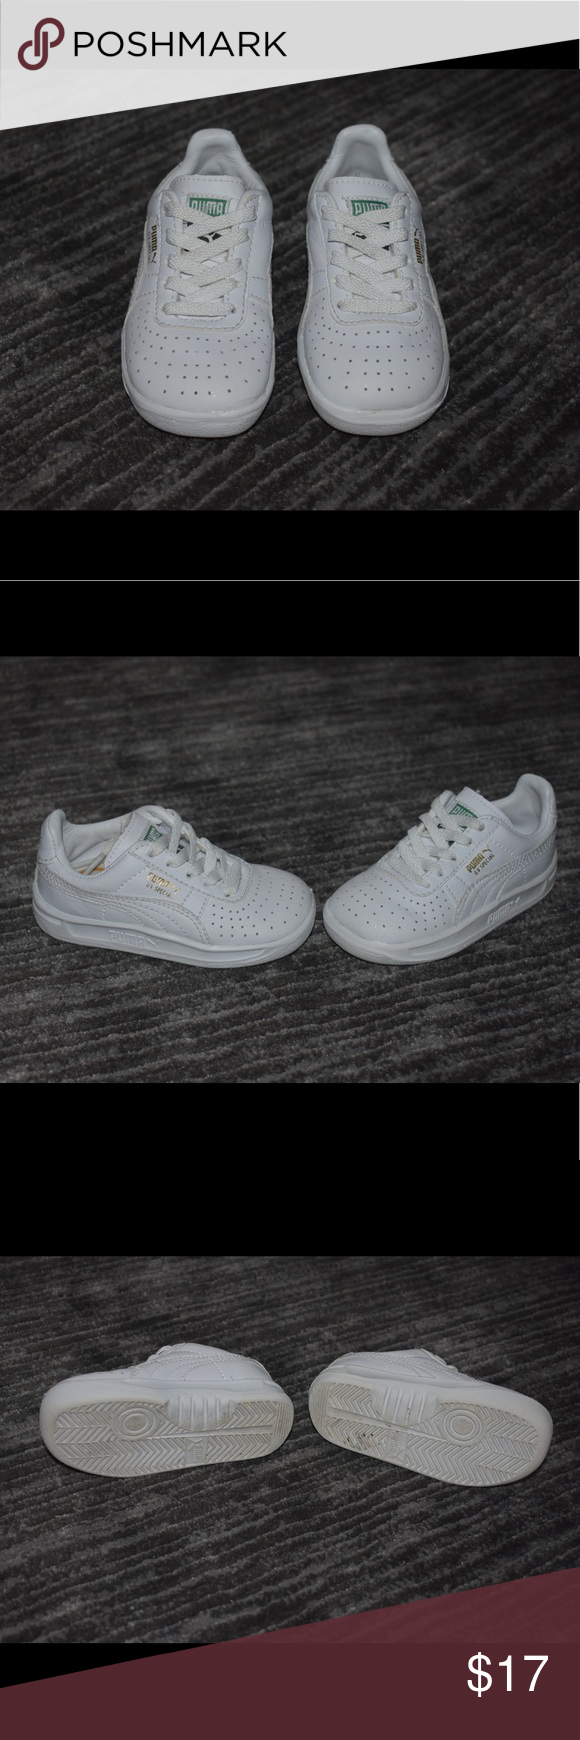 1e512186 White Puma gv special baby/toddler shoes Worn a few times but kept ...